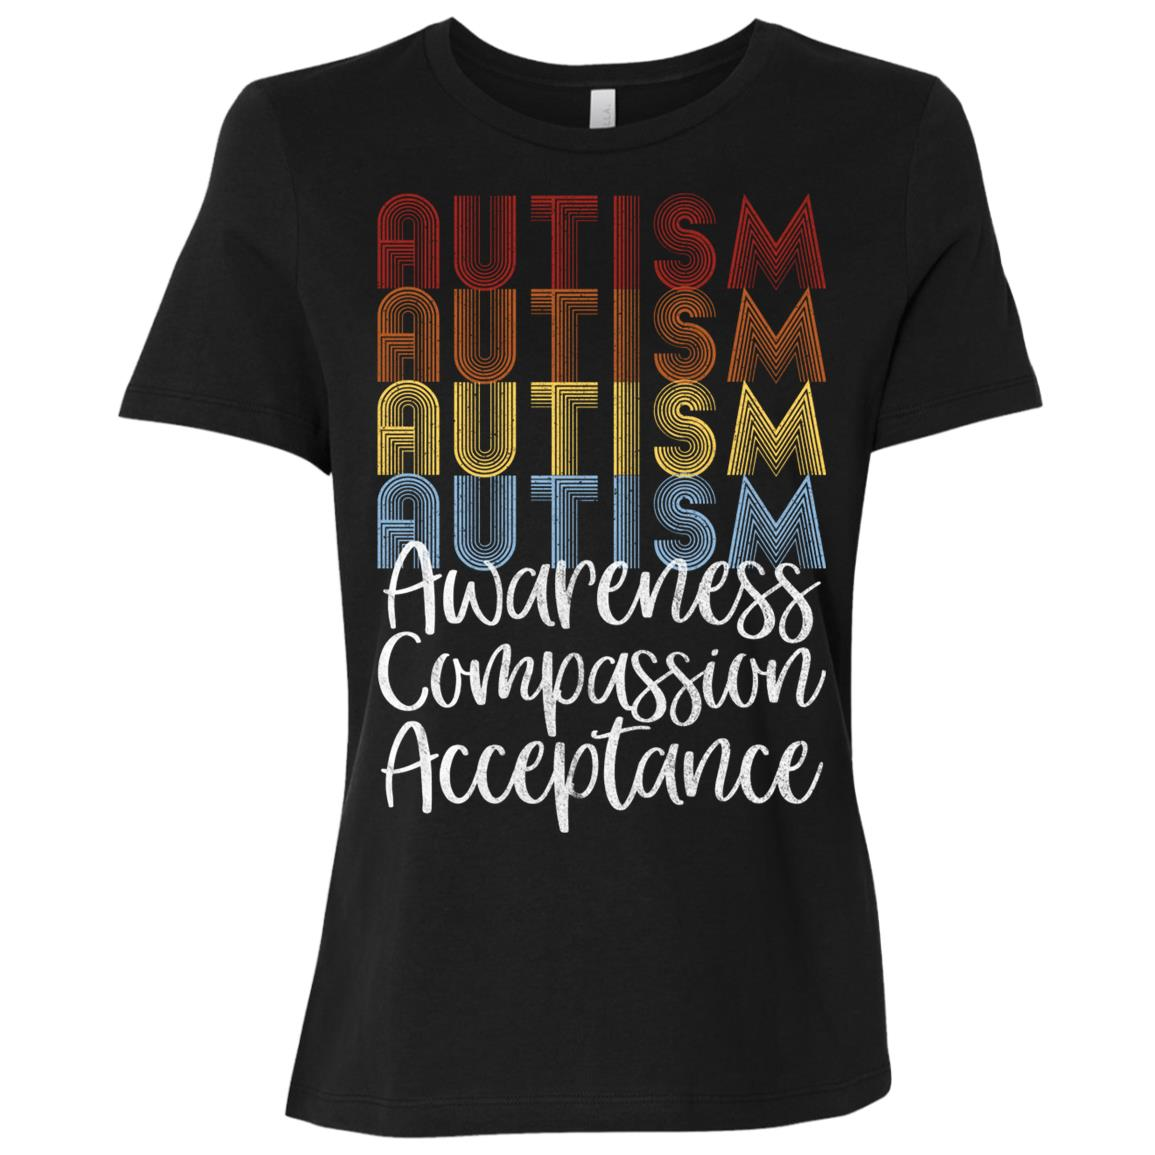 Retro Vintage Autism Awareness with Distressed Text Women Short Sleeve T-Shirt